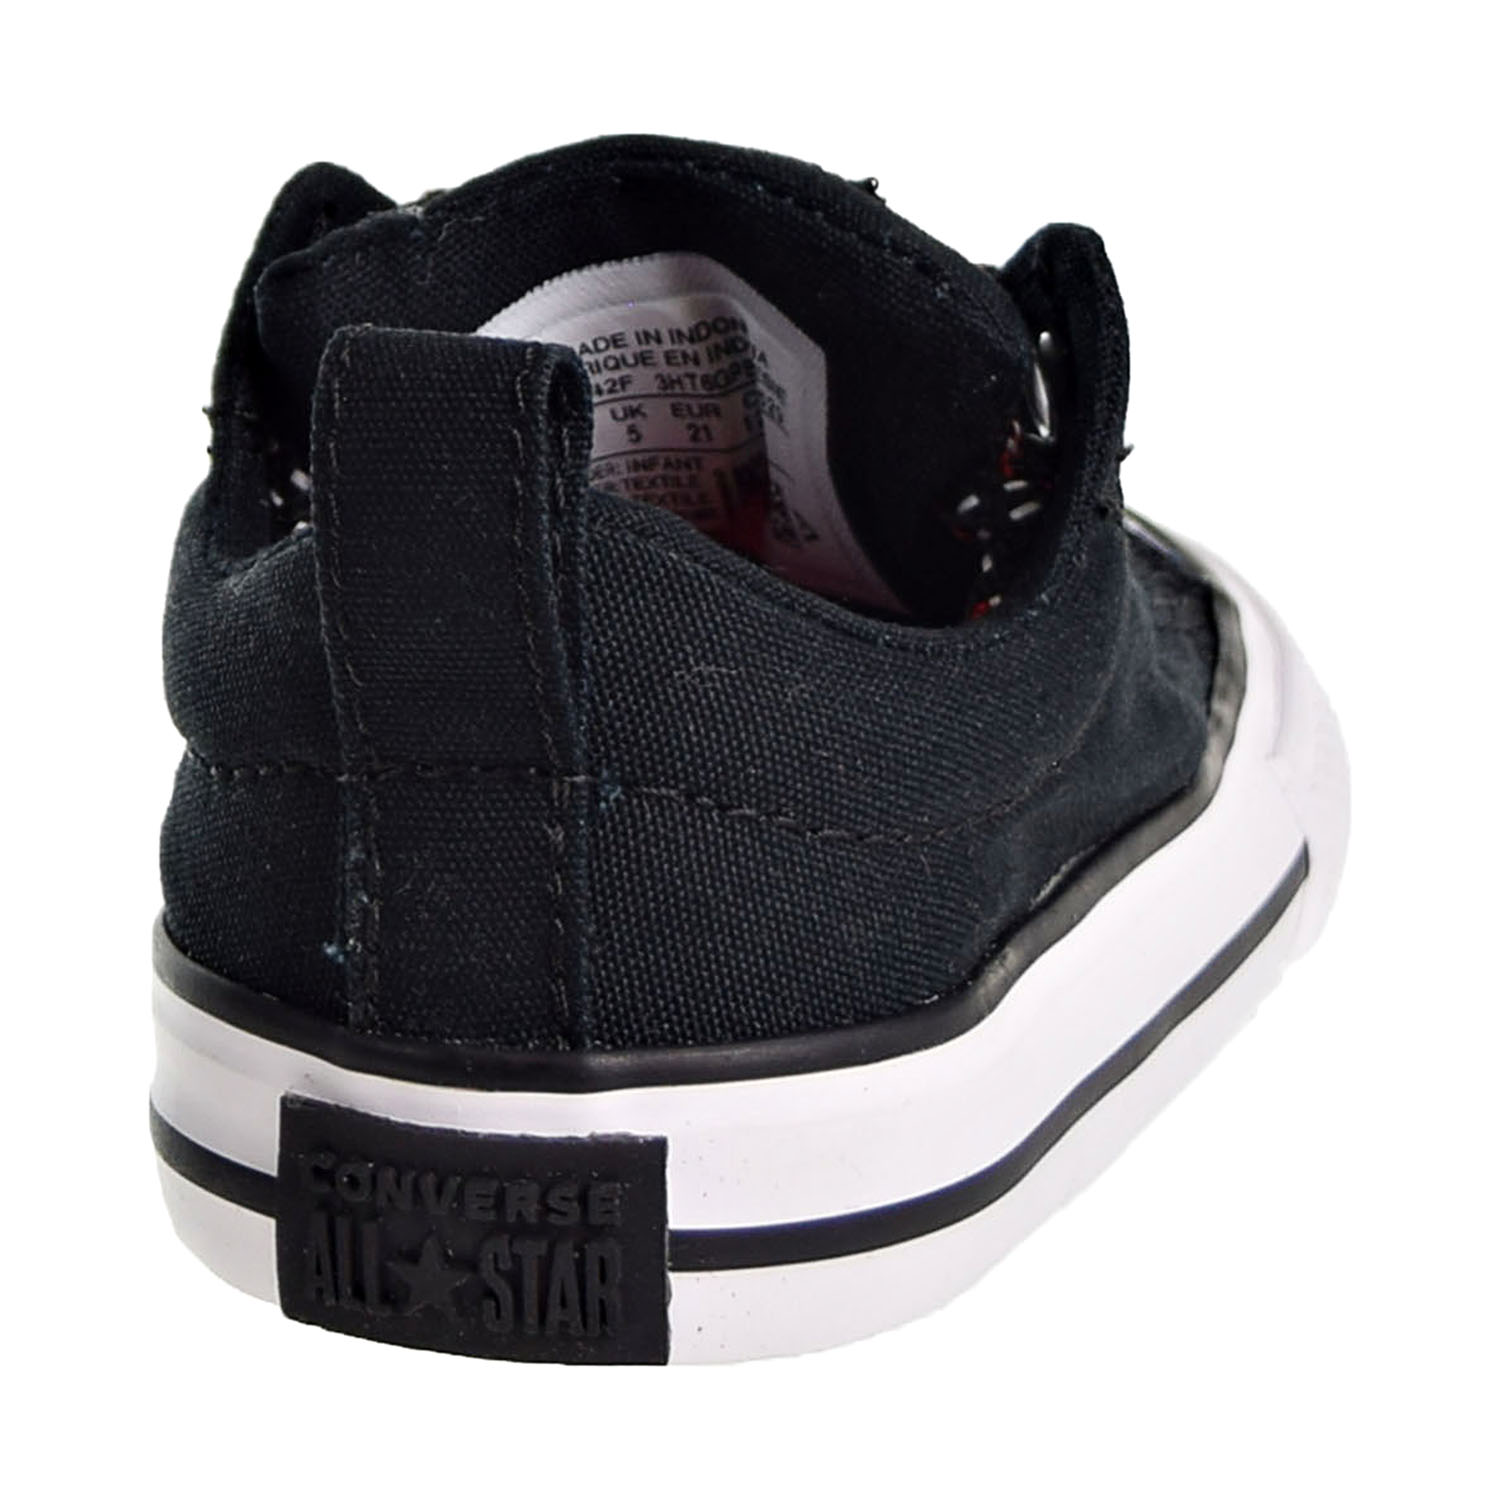 Converse Chuck Taylor All Star Street Slip Toddler s Shoes Black  Enamel Red  762342f 52d19da0b